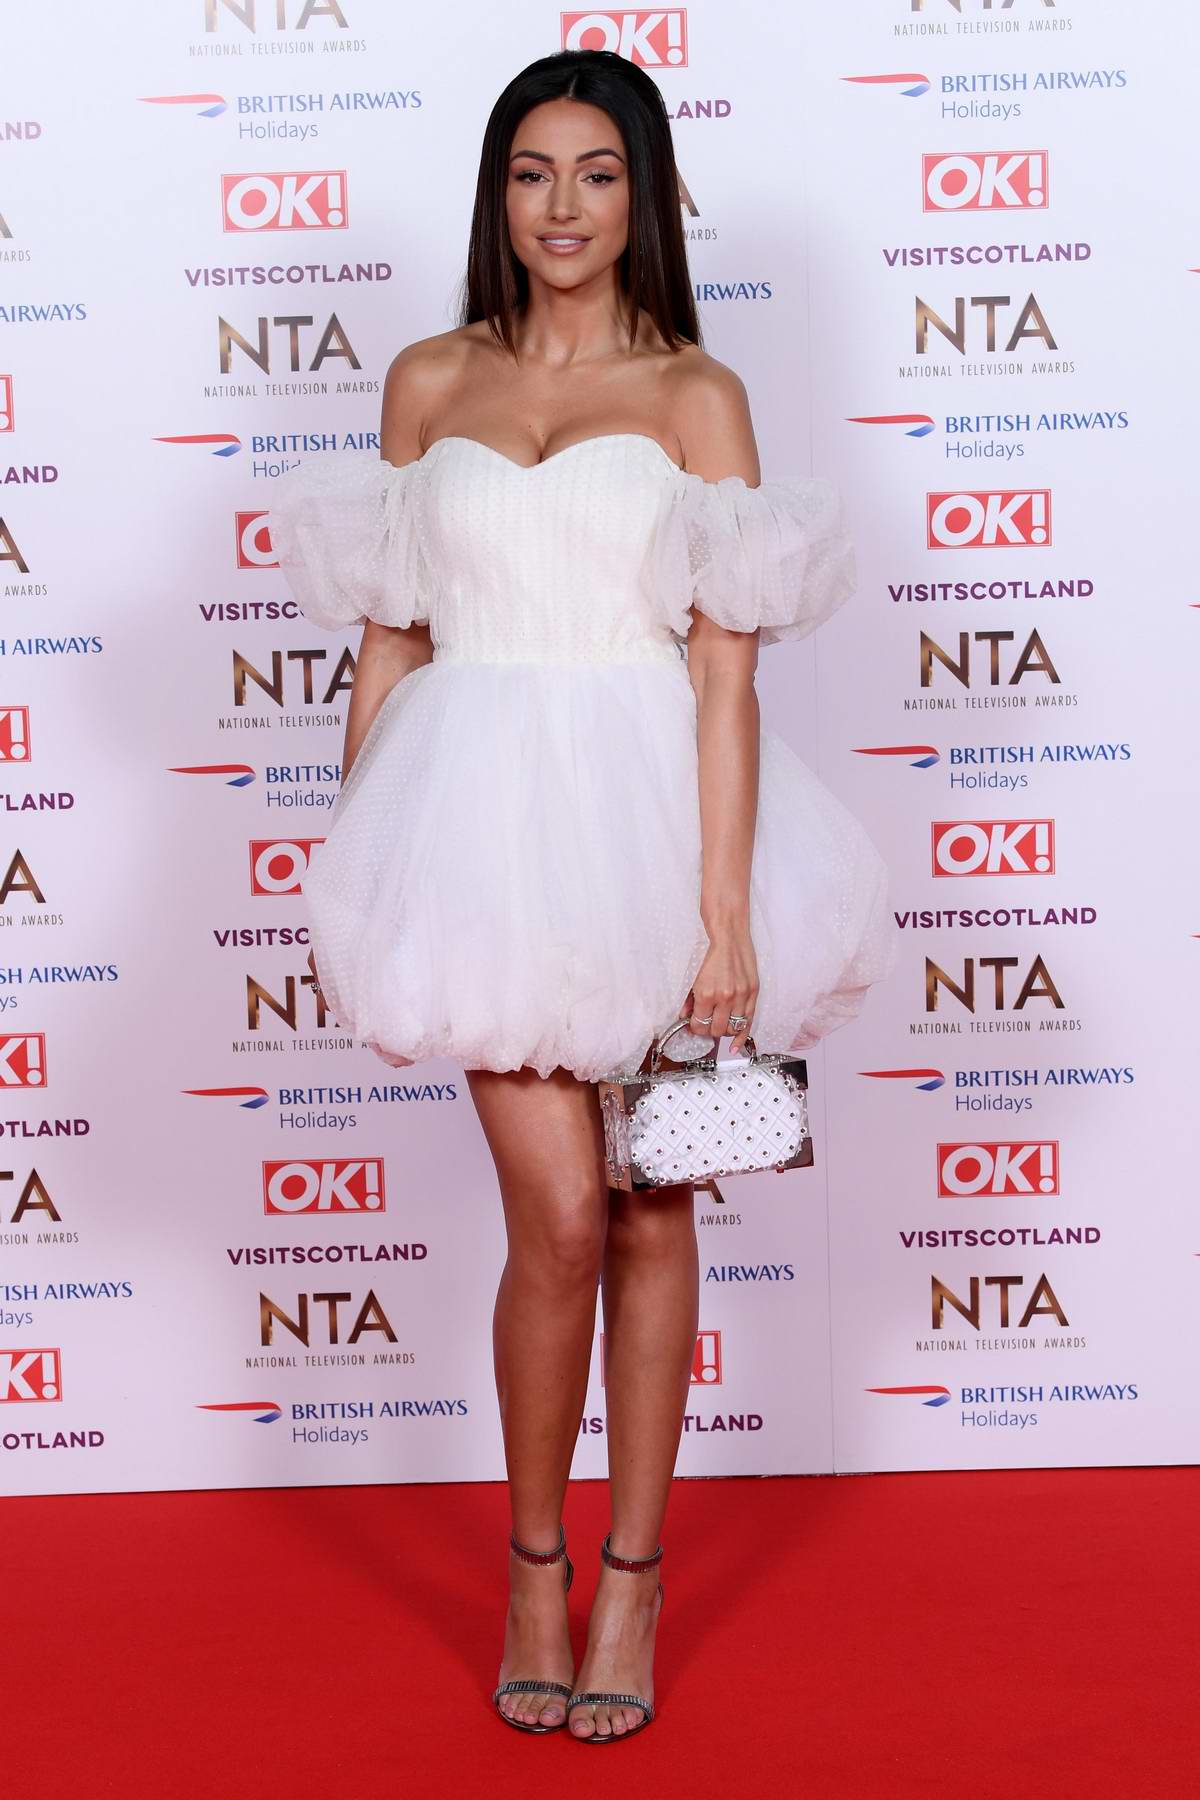 Michelle Keegan attends 23rd National Television Awards in London, UK